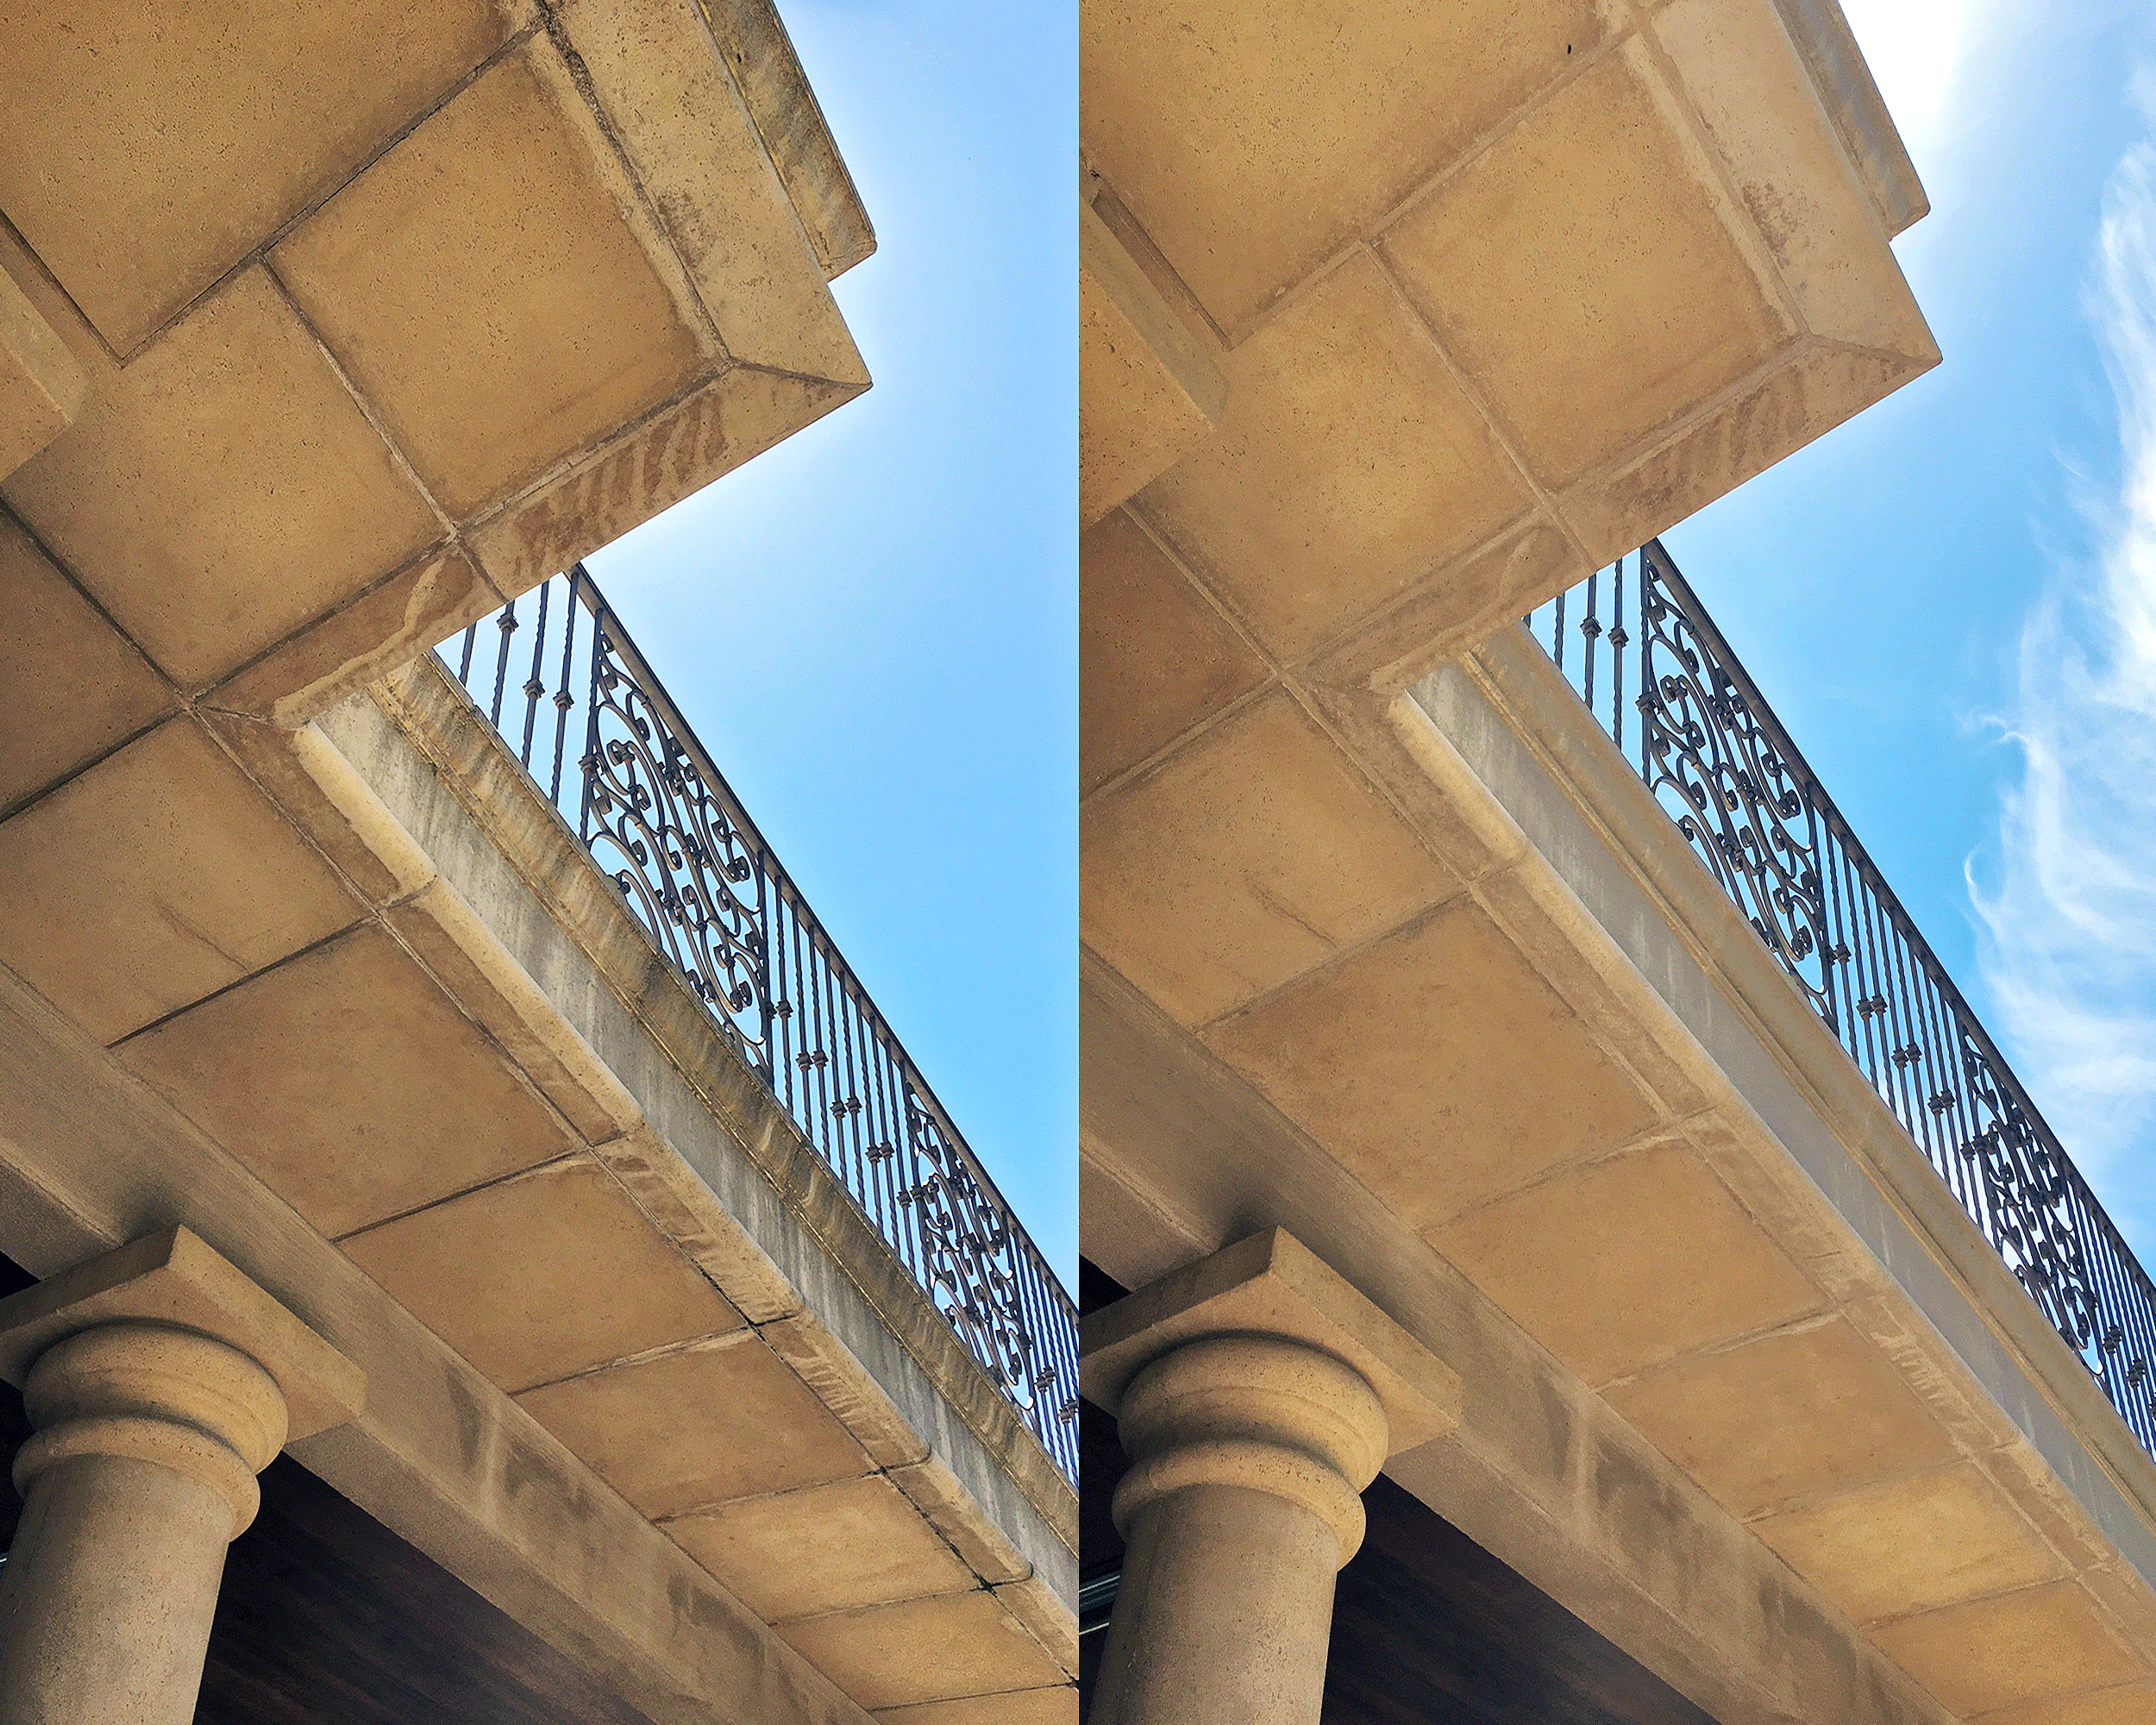 Before (left) and After (right) of failing grout and discolored precast concrete and GFRC cladding material rejuvenated by our restoration package.